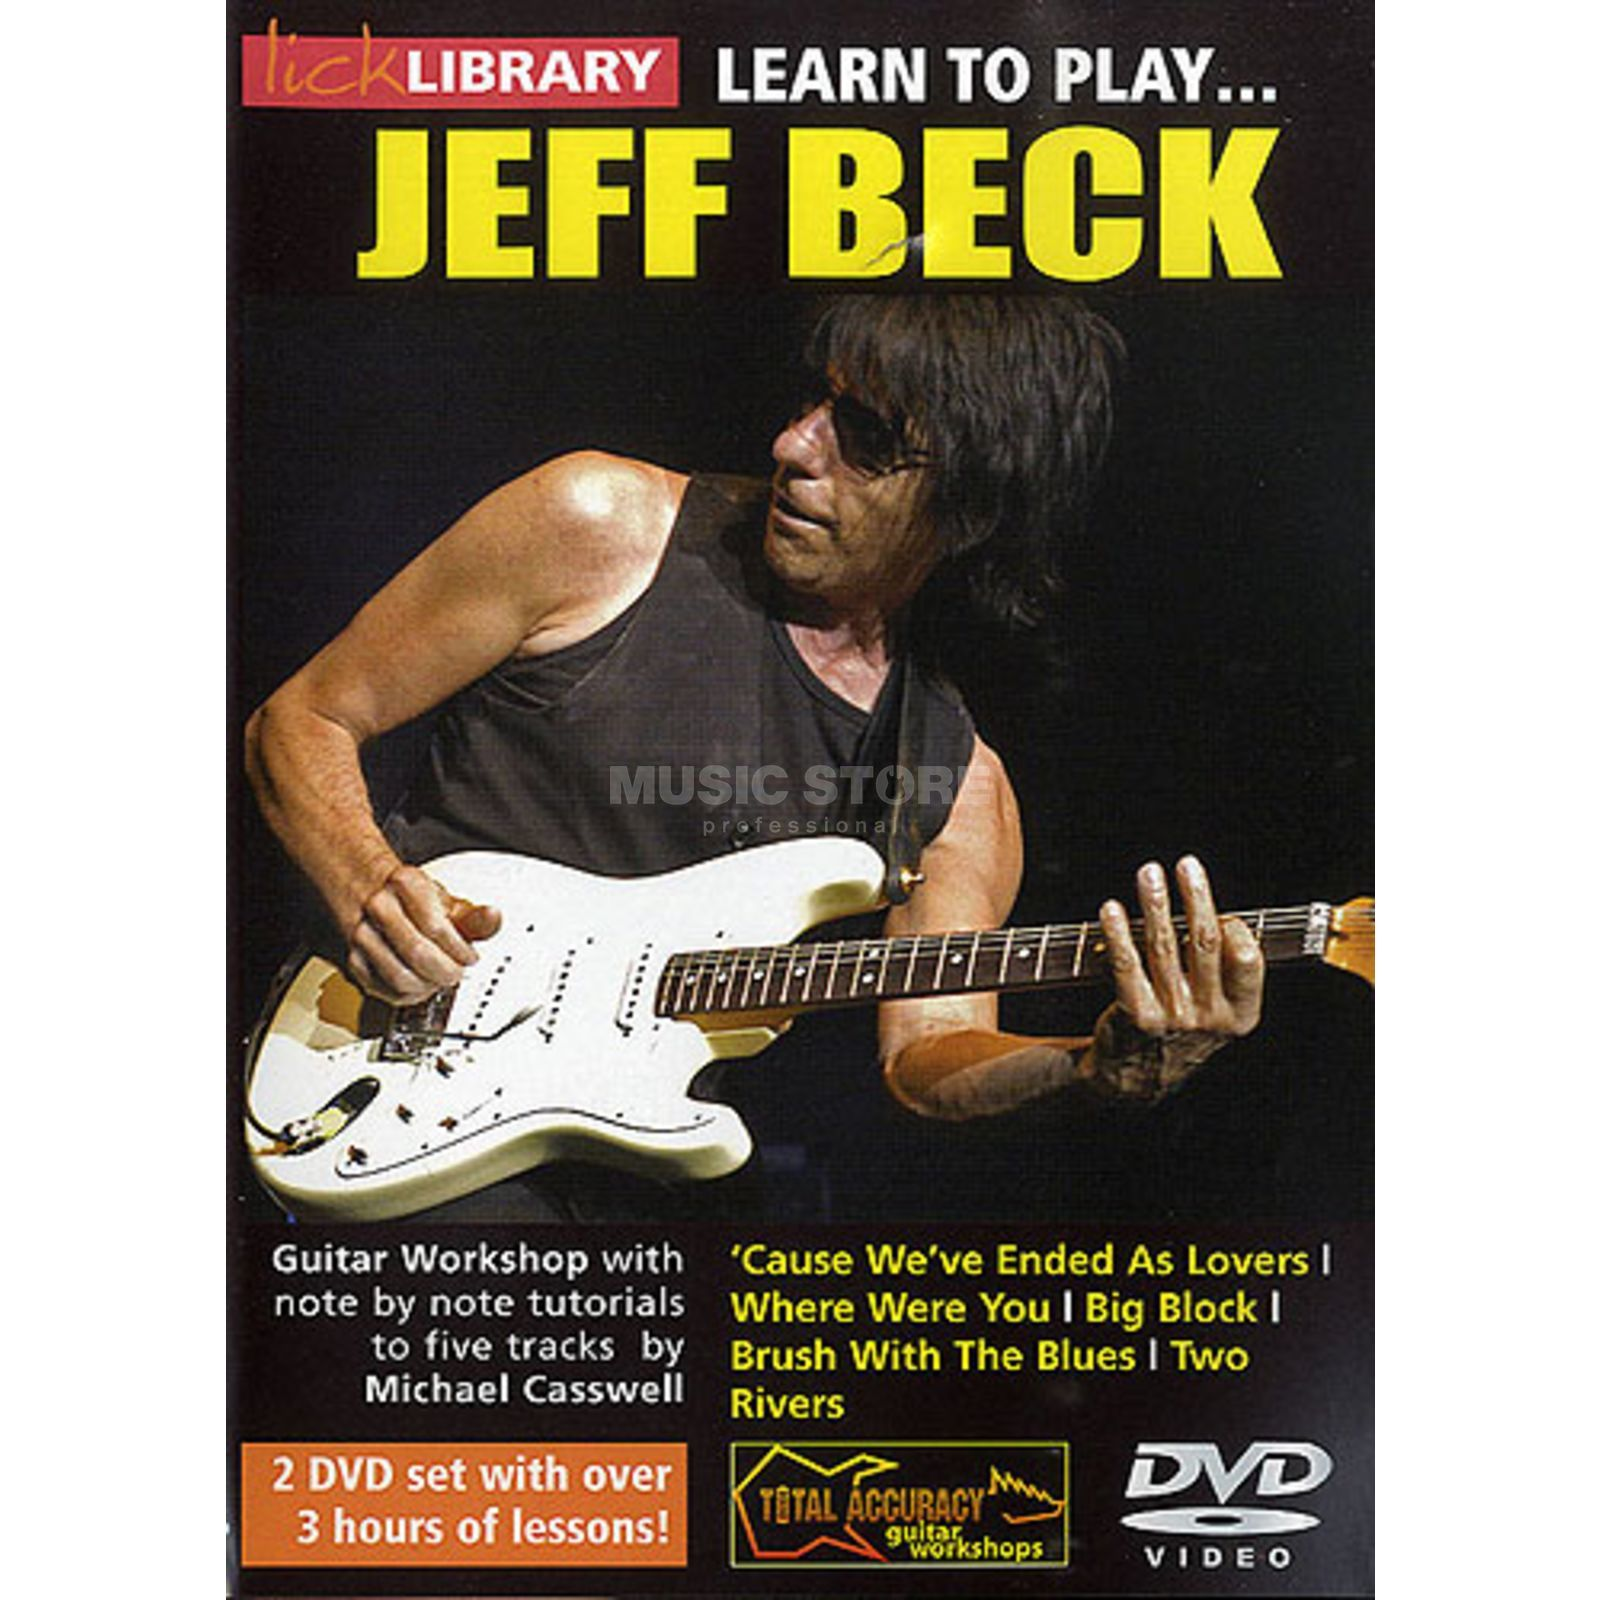 Roadrock International Lick Library: Learn to Play Jeff Beck DVD Produktbillede